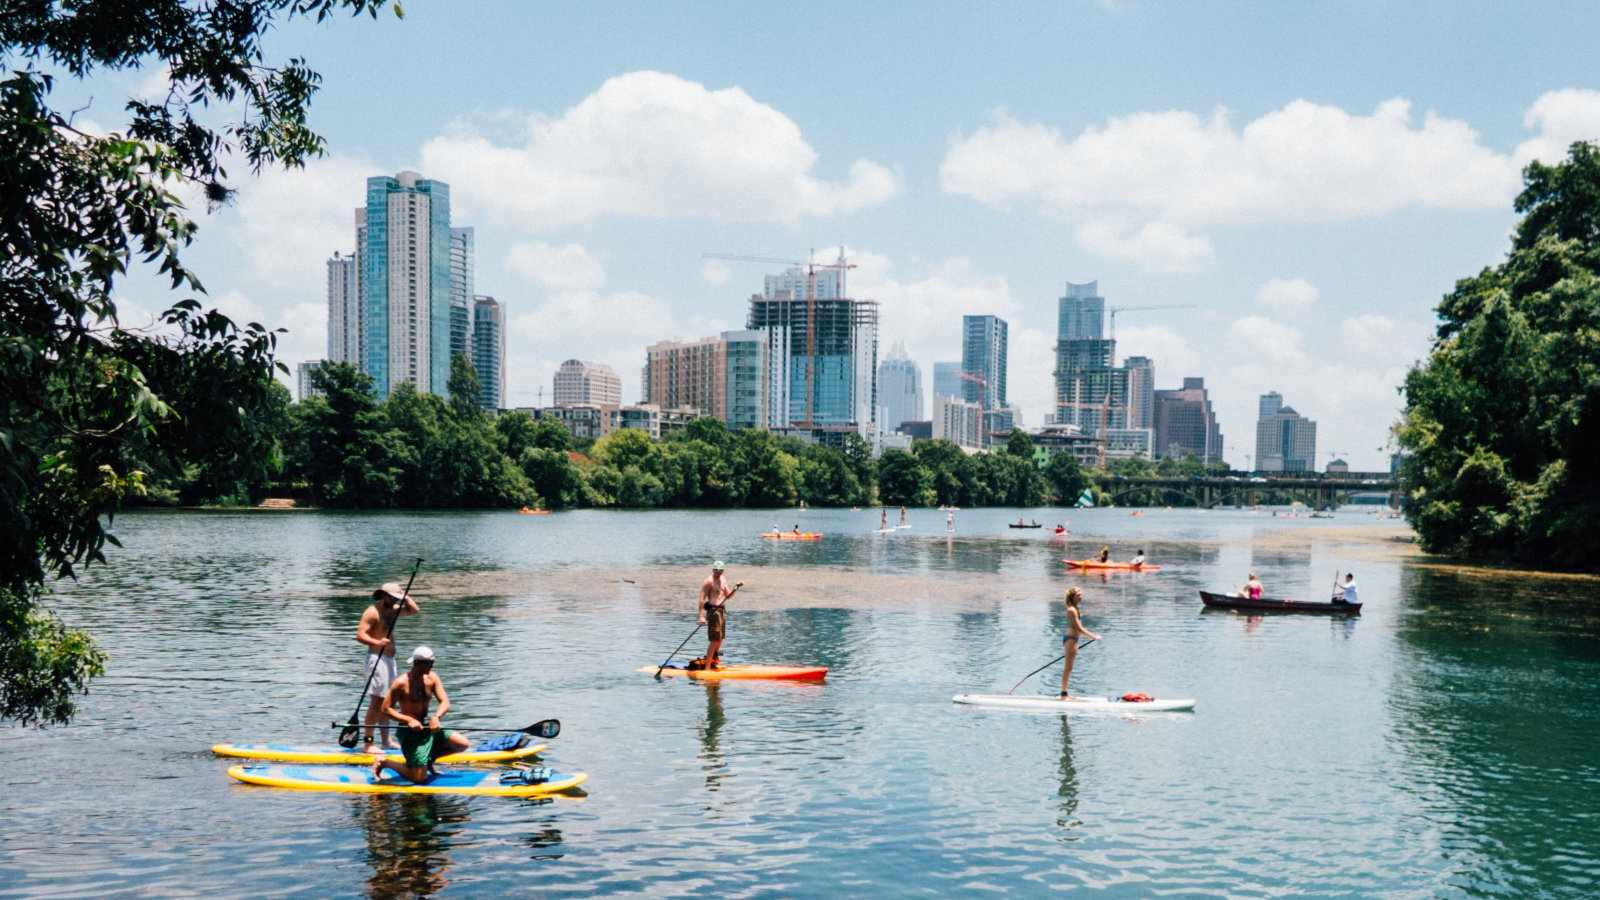 Even though it's in the conservative south, Austin in Texas is still one of the gayest cities in America